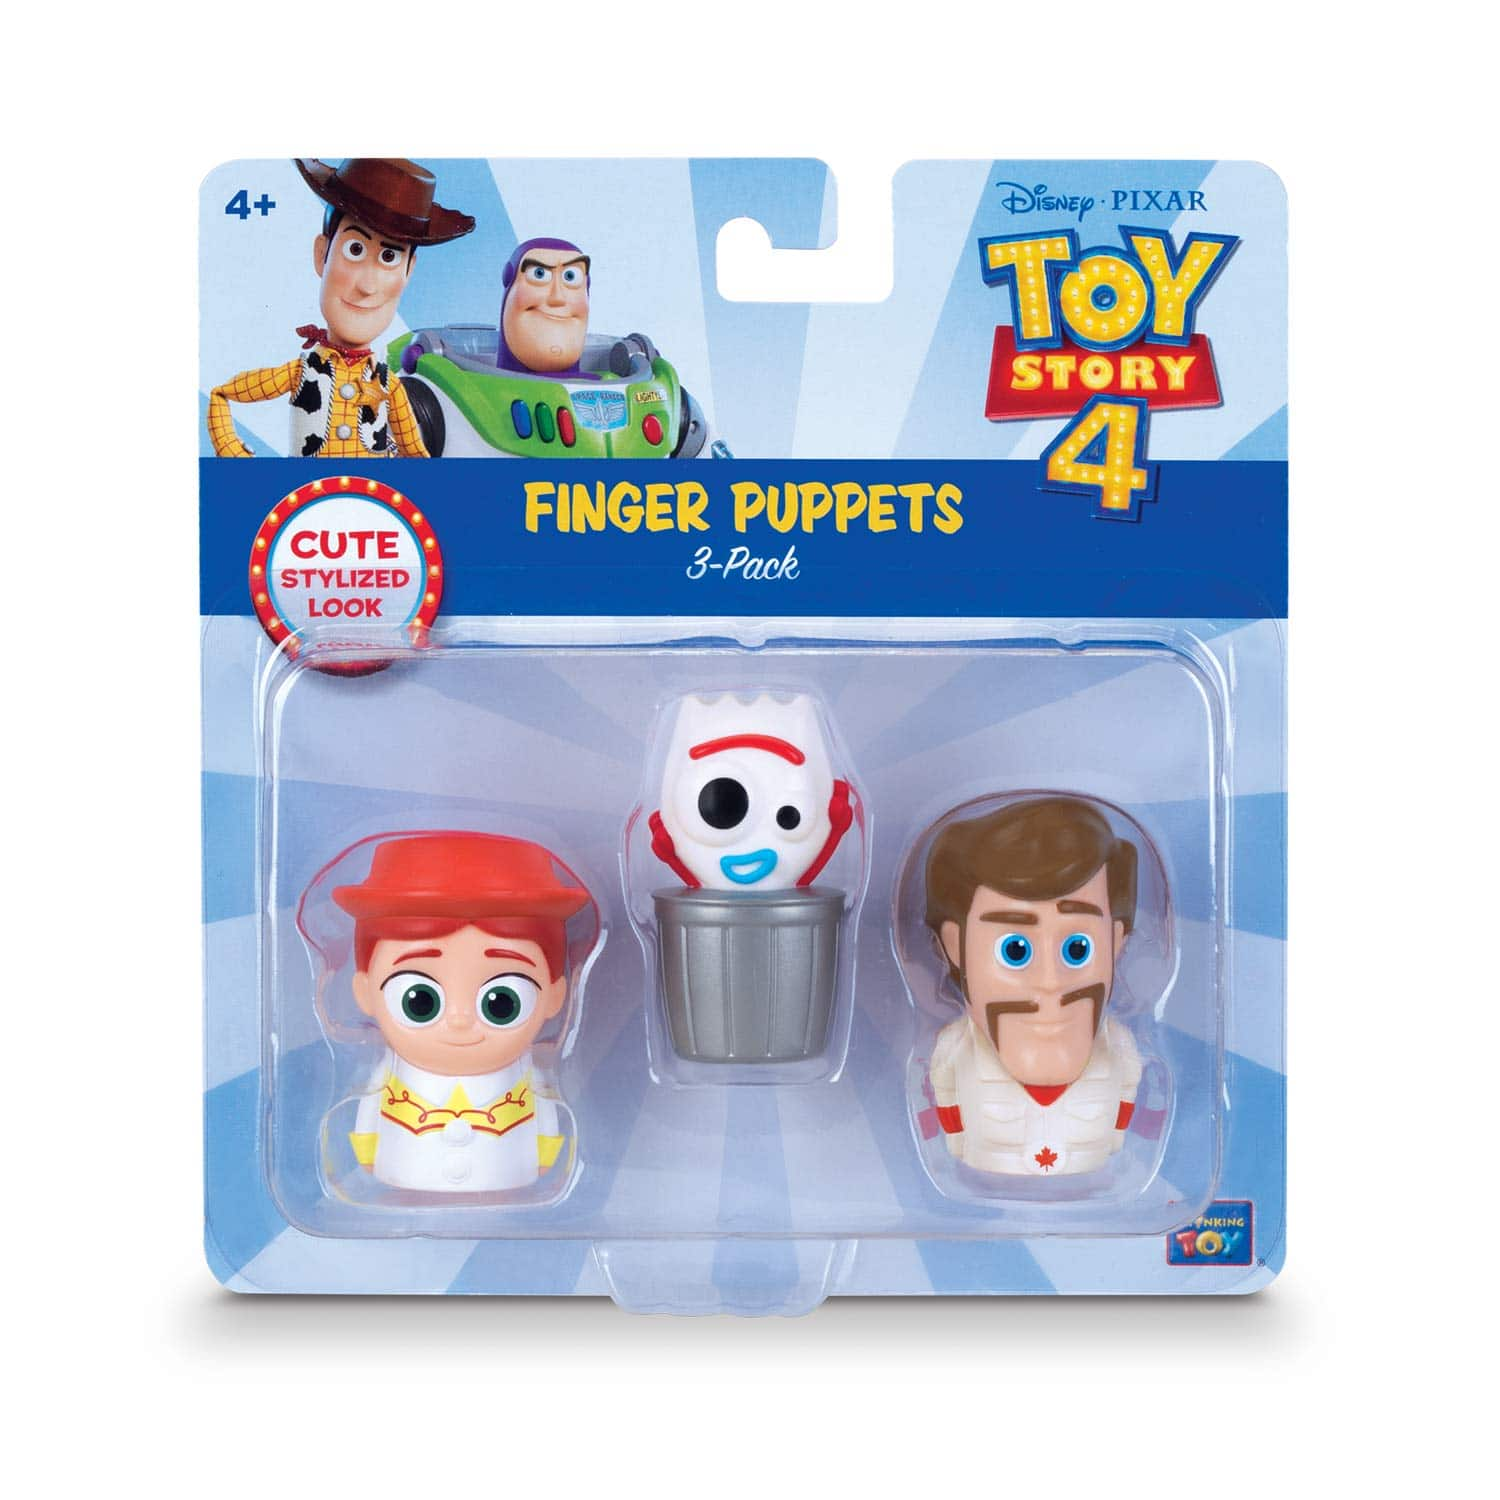 Toy Story 4 -Finger Puppets - 3 Pack - Jessie, Forky, Duke CaboomToy Story Disney Pixar 4 Finger Puppets - 3 Pack - Jessie, Forky, Duke Caboom - $4.73 at Amazon